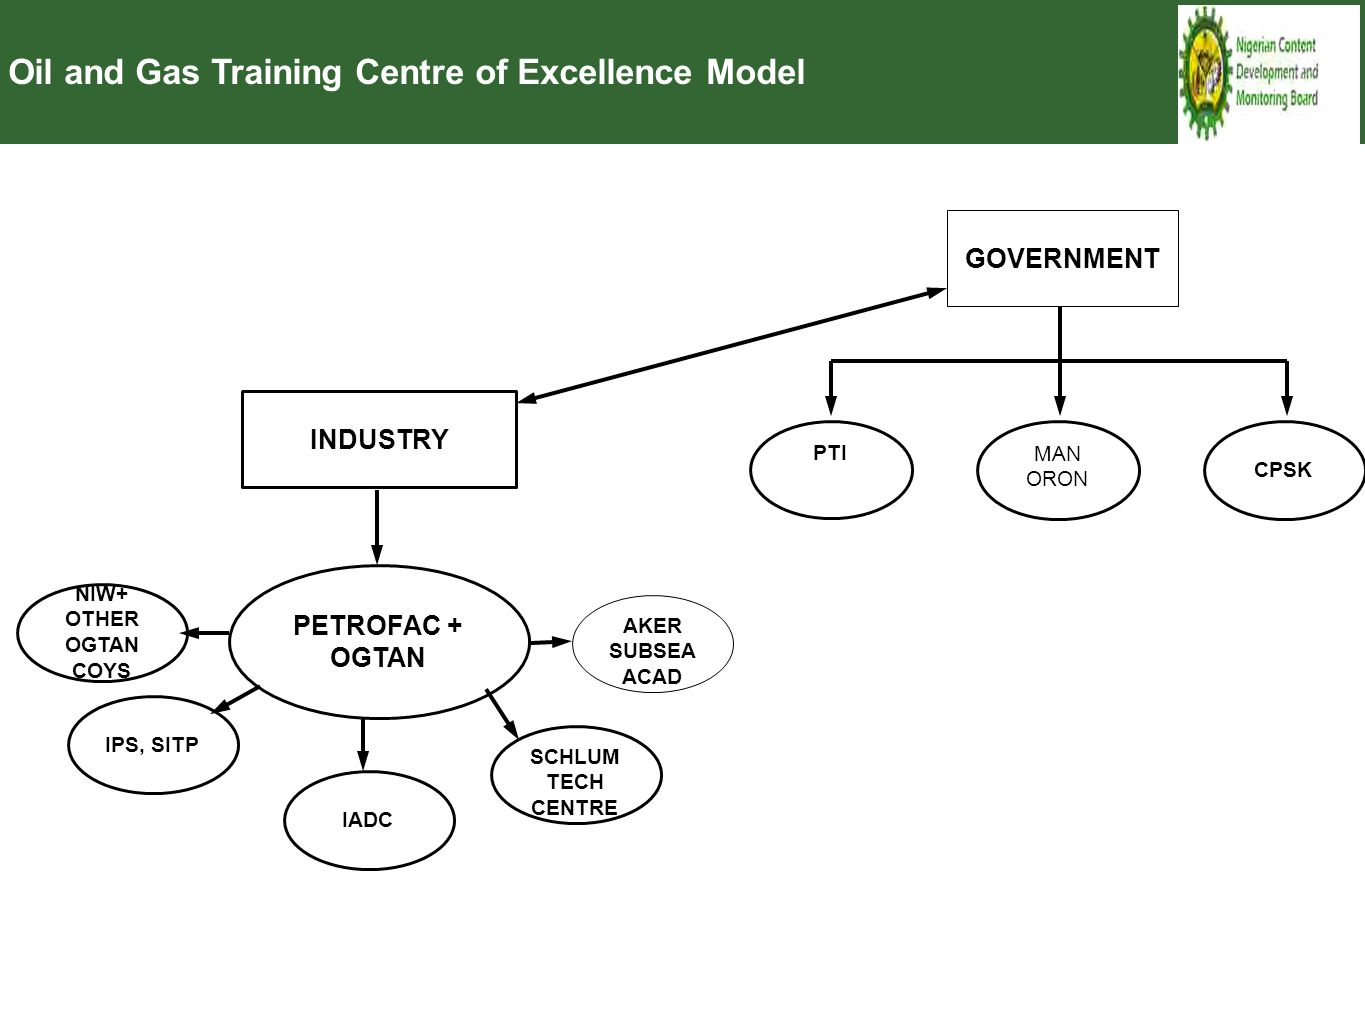 Oil and Gas Training Centre of Excellence Model INDUSTRY PETROFAC + OGTAN NIW+ OTHER OGTAN COYS IPS, SITPIADC SCHLUM TECH CENTRE AKER SUBSEA ACAD GOVE